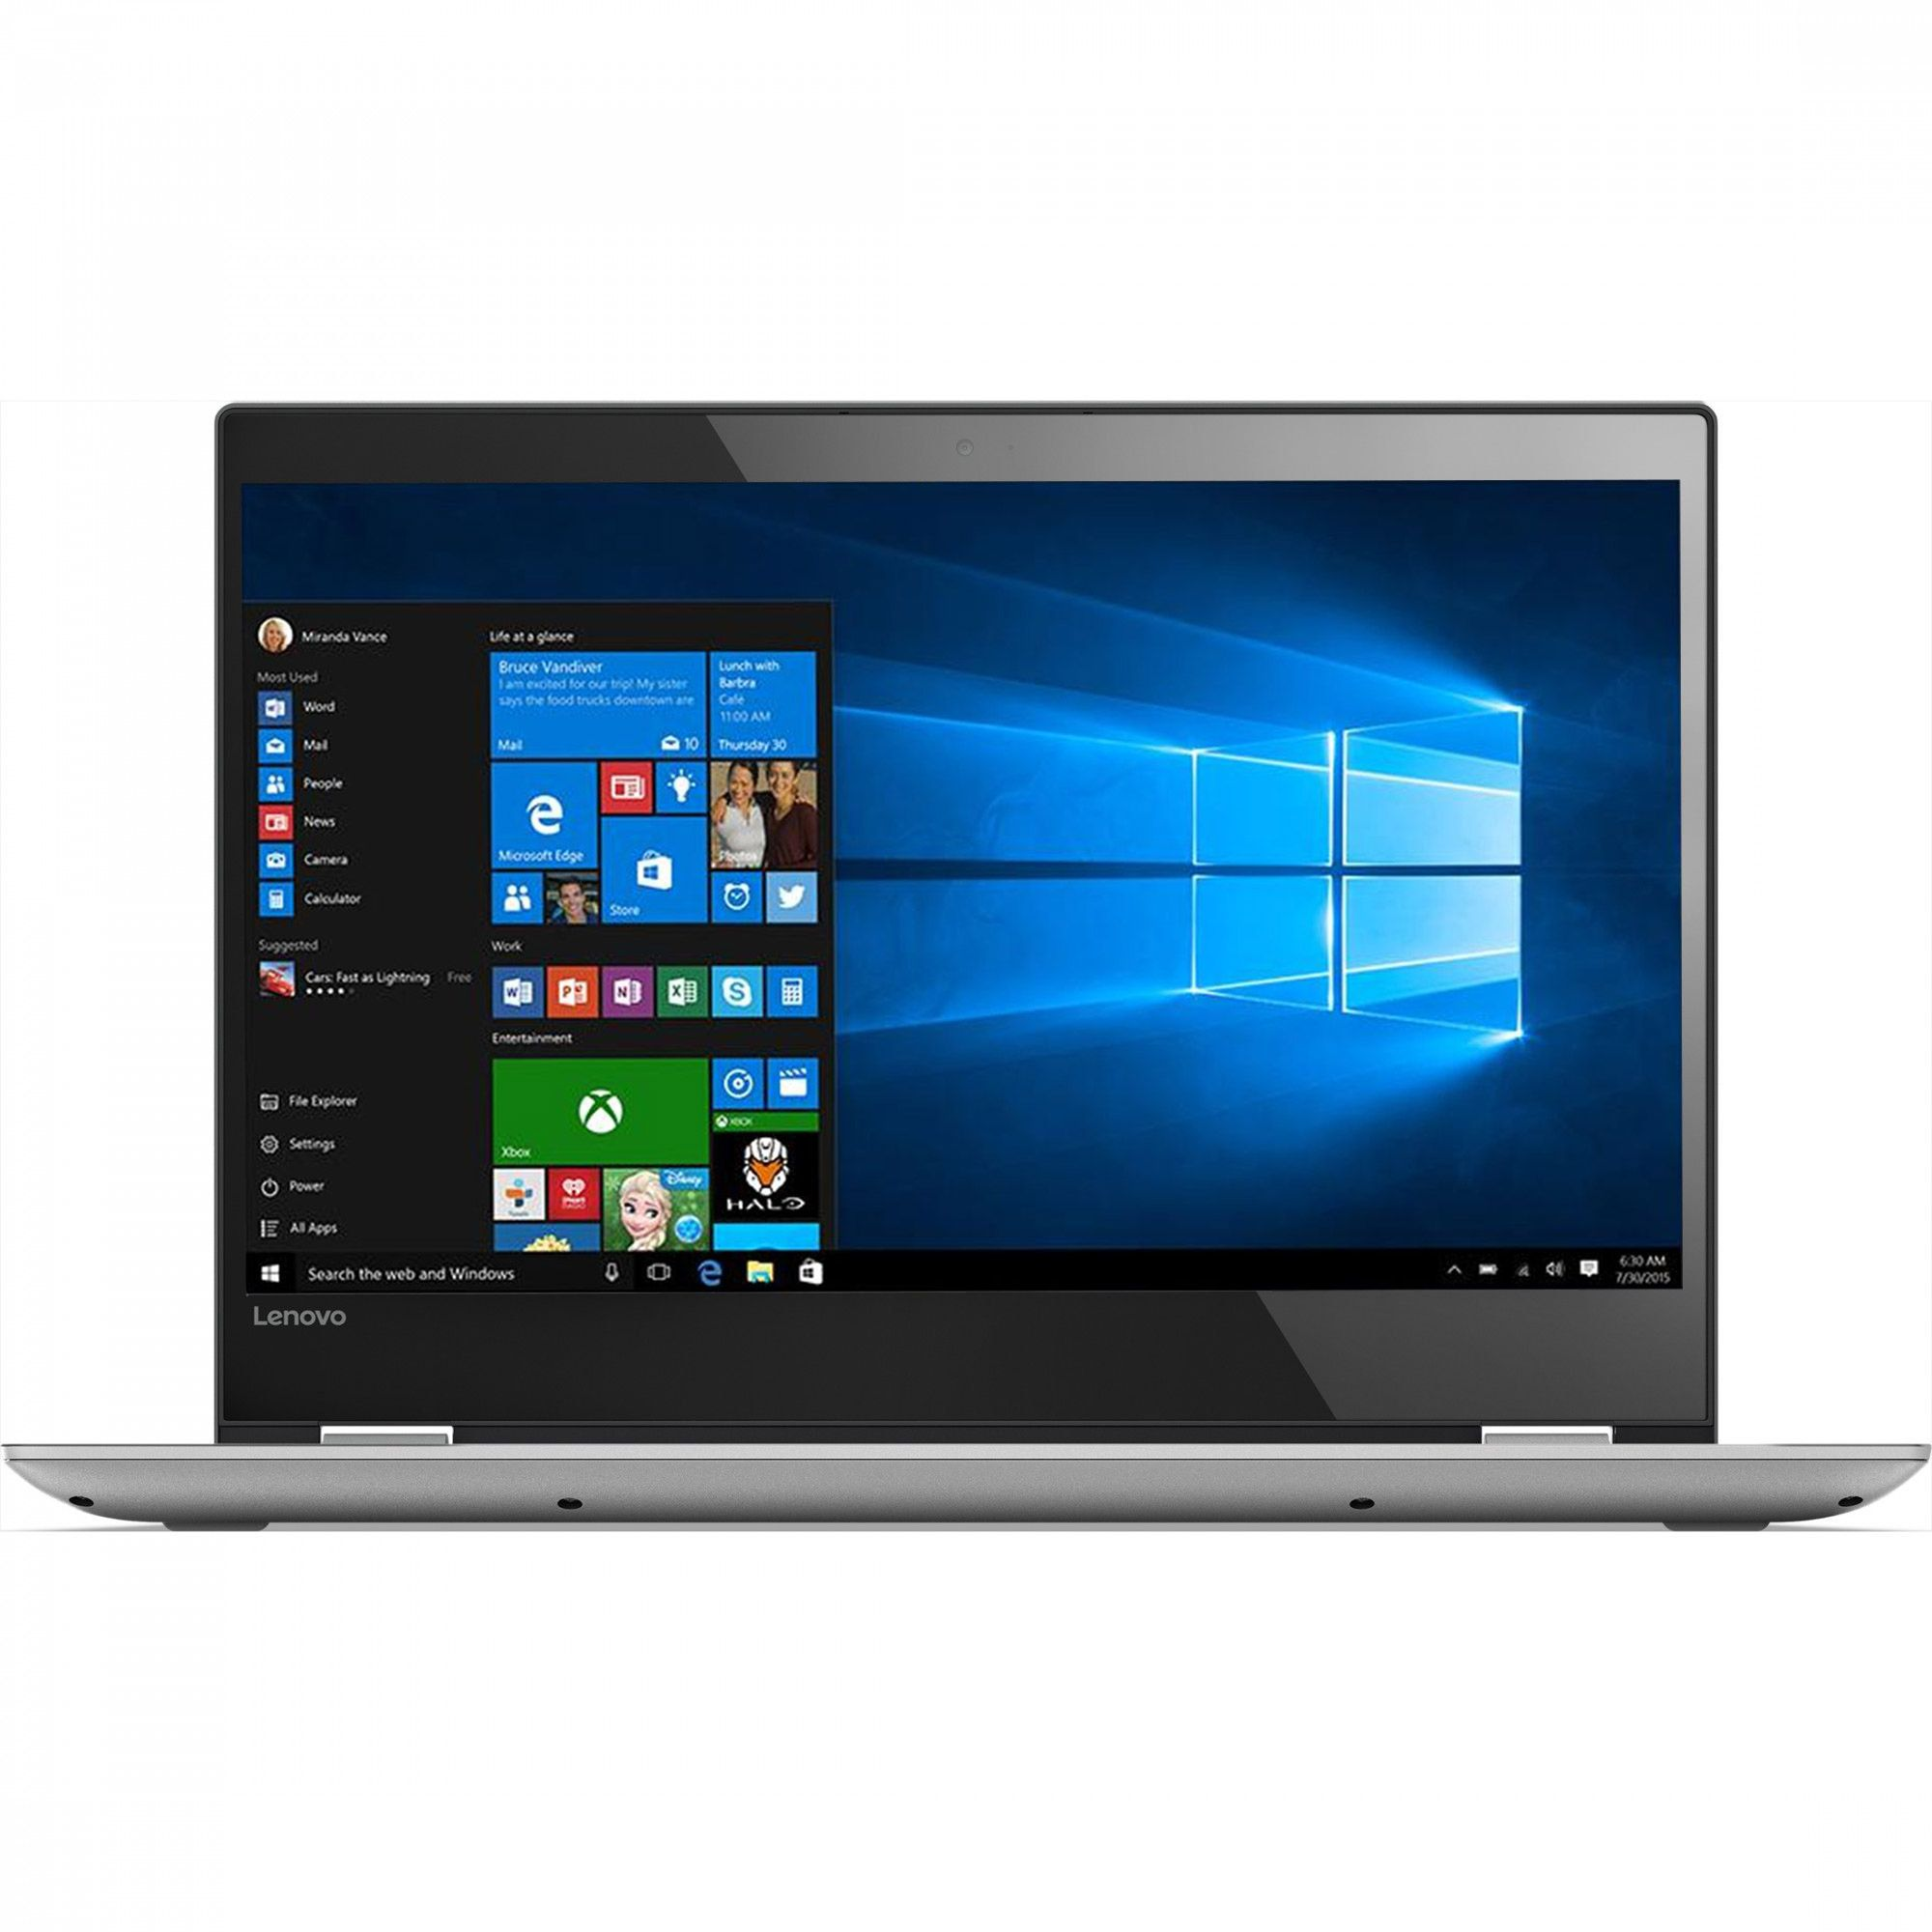 Ultrabook Lenovo Yoga 520 14 Full HD Touch Intel Core i3-7100U RAM 4GB HDD 1TB Windows 10 Home Gri